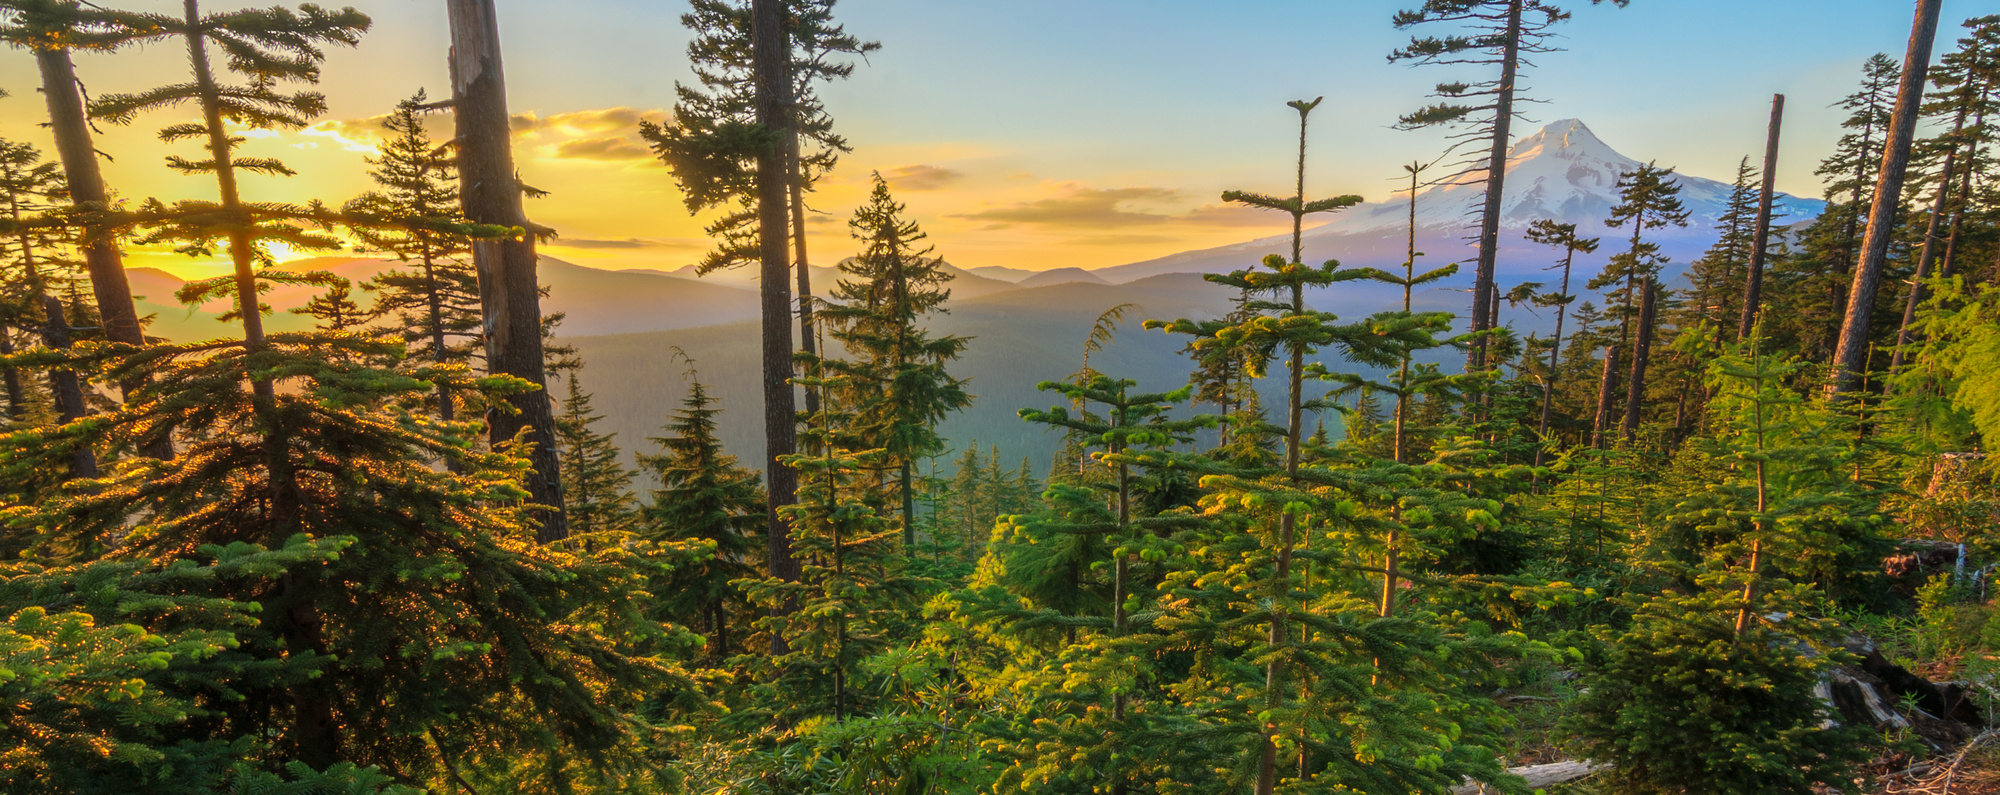 Camping spots in Oregon